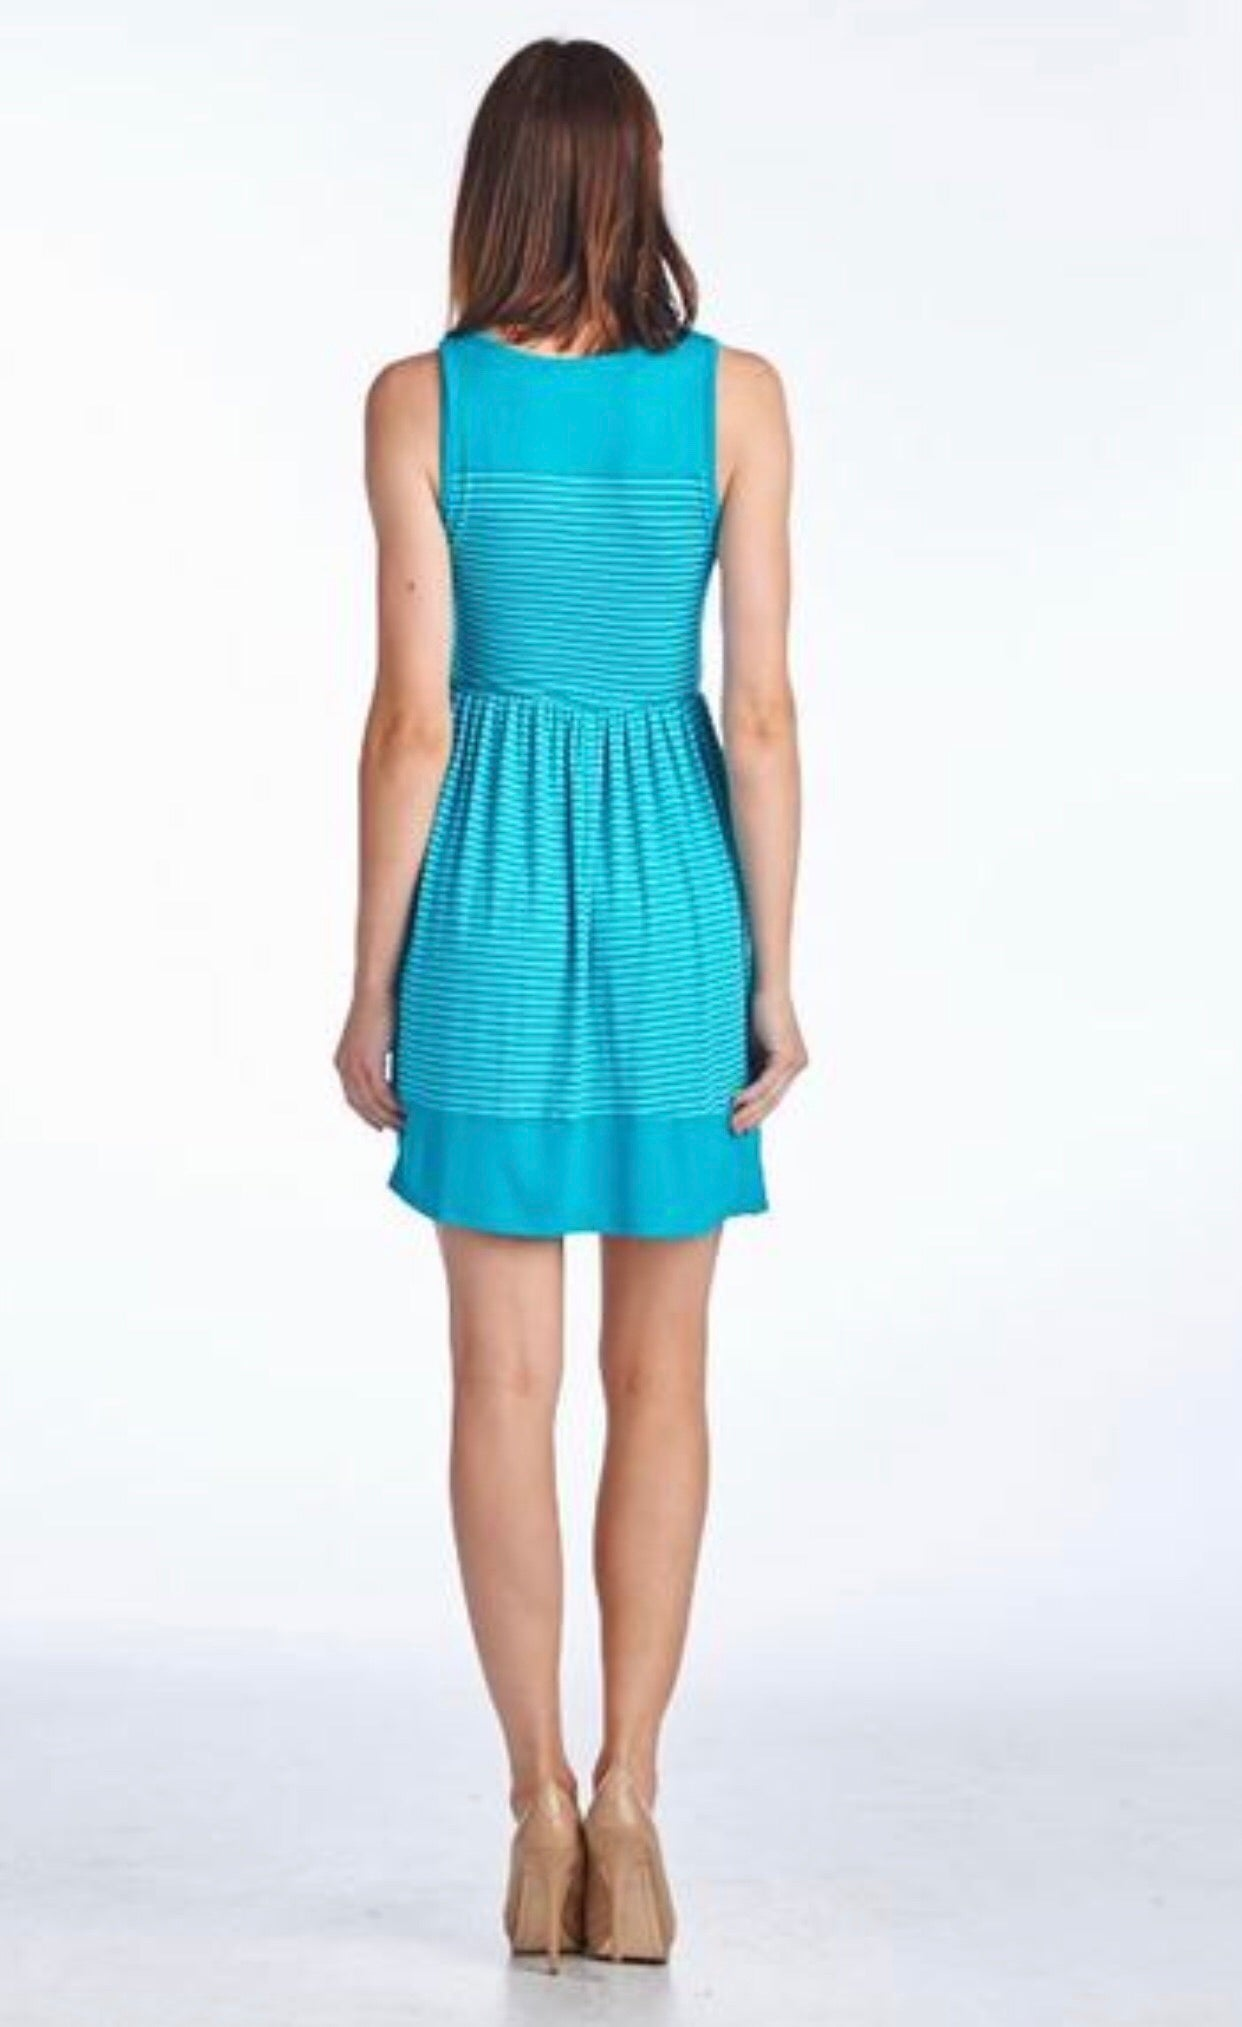 Turquoise & white stripe dress